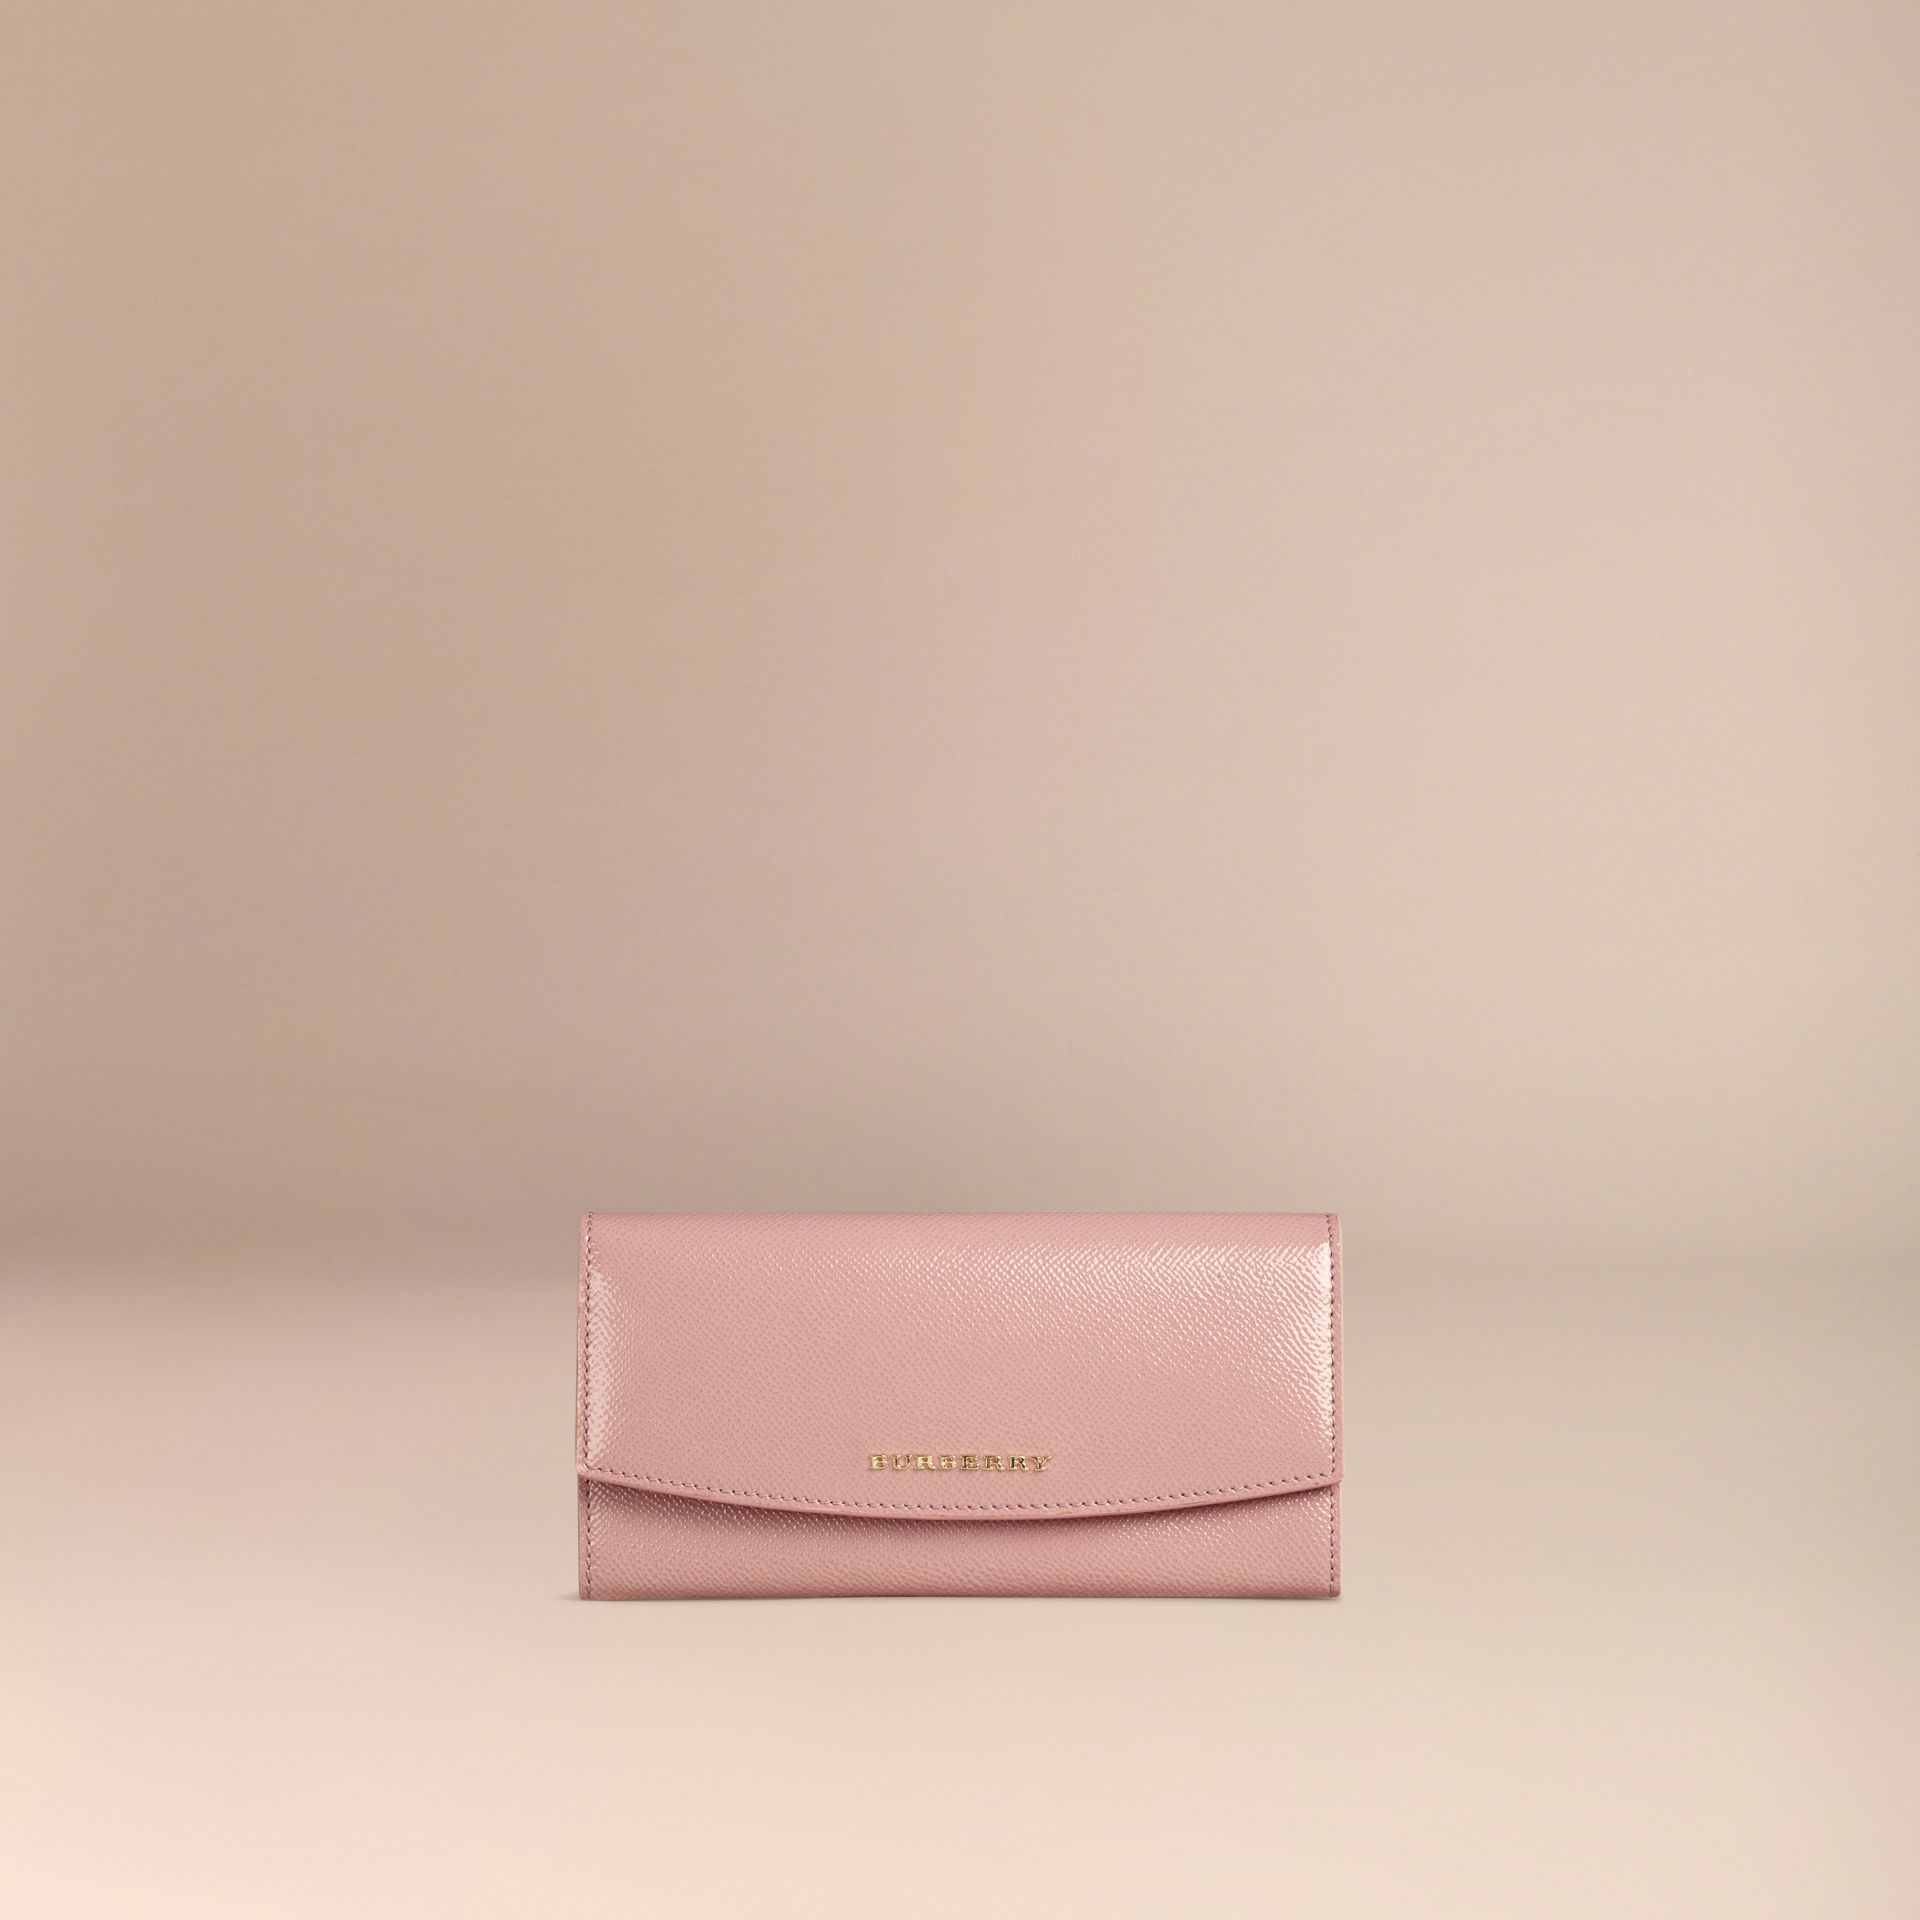 Ash rose Patent London Leather Continental Wallet Ash Rose - gallery image 3